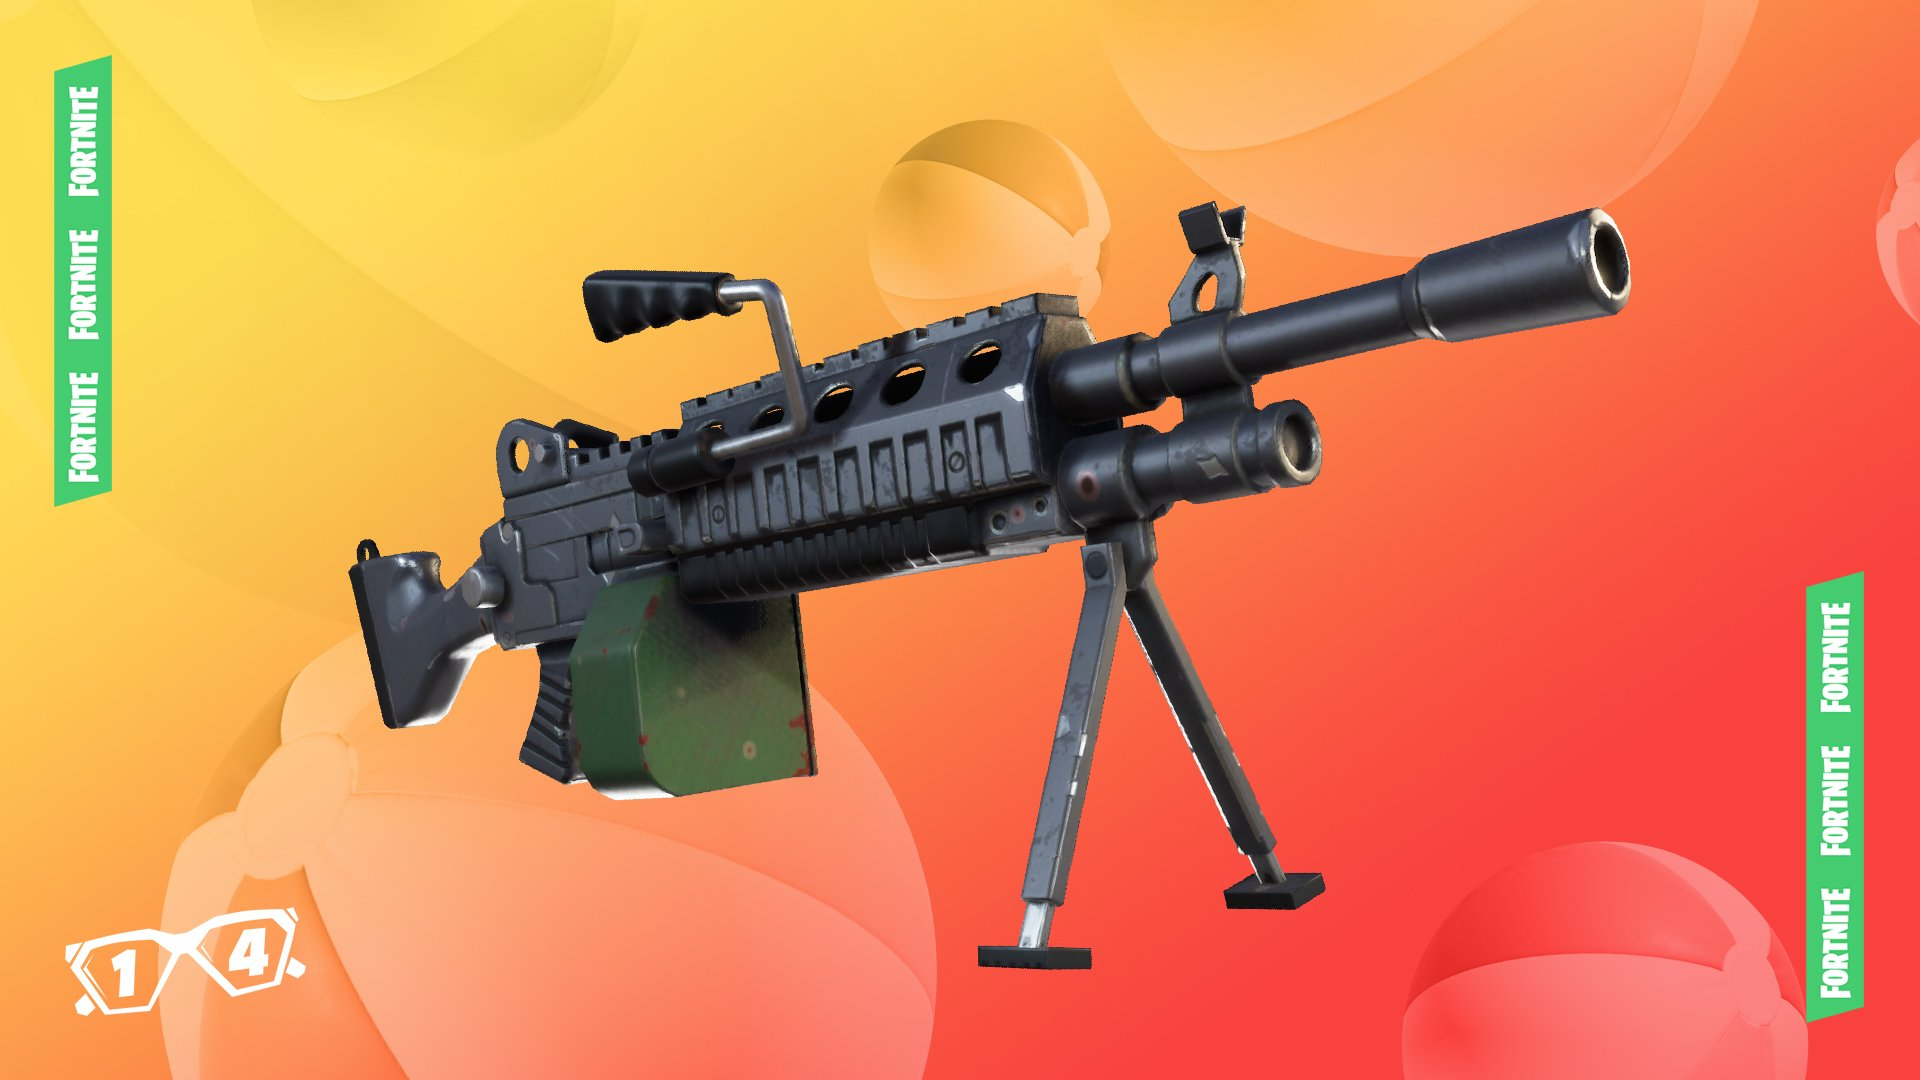 14 Day Summer Fortnite Event, Day 1, Light Machine Gun, Not Arched